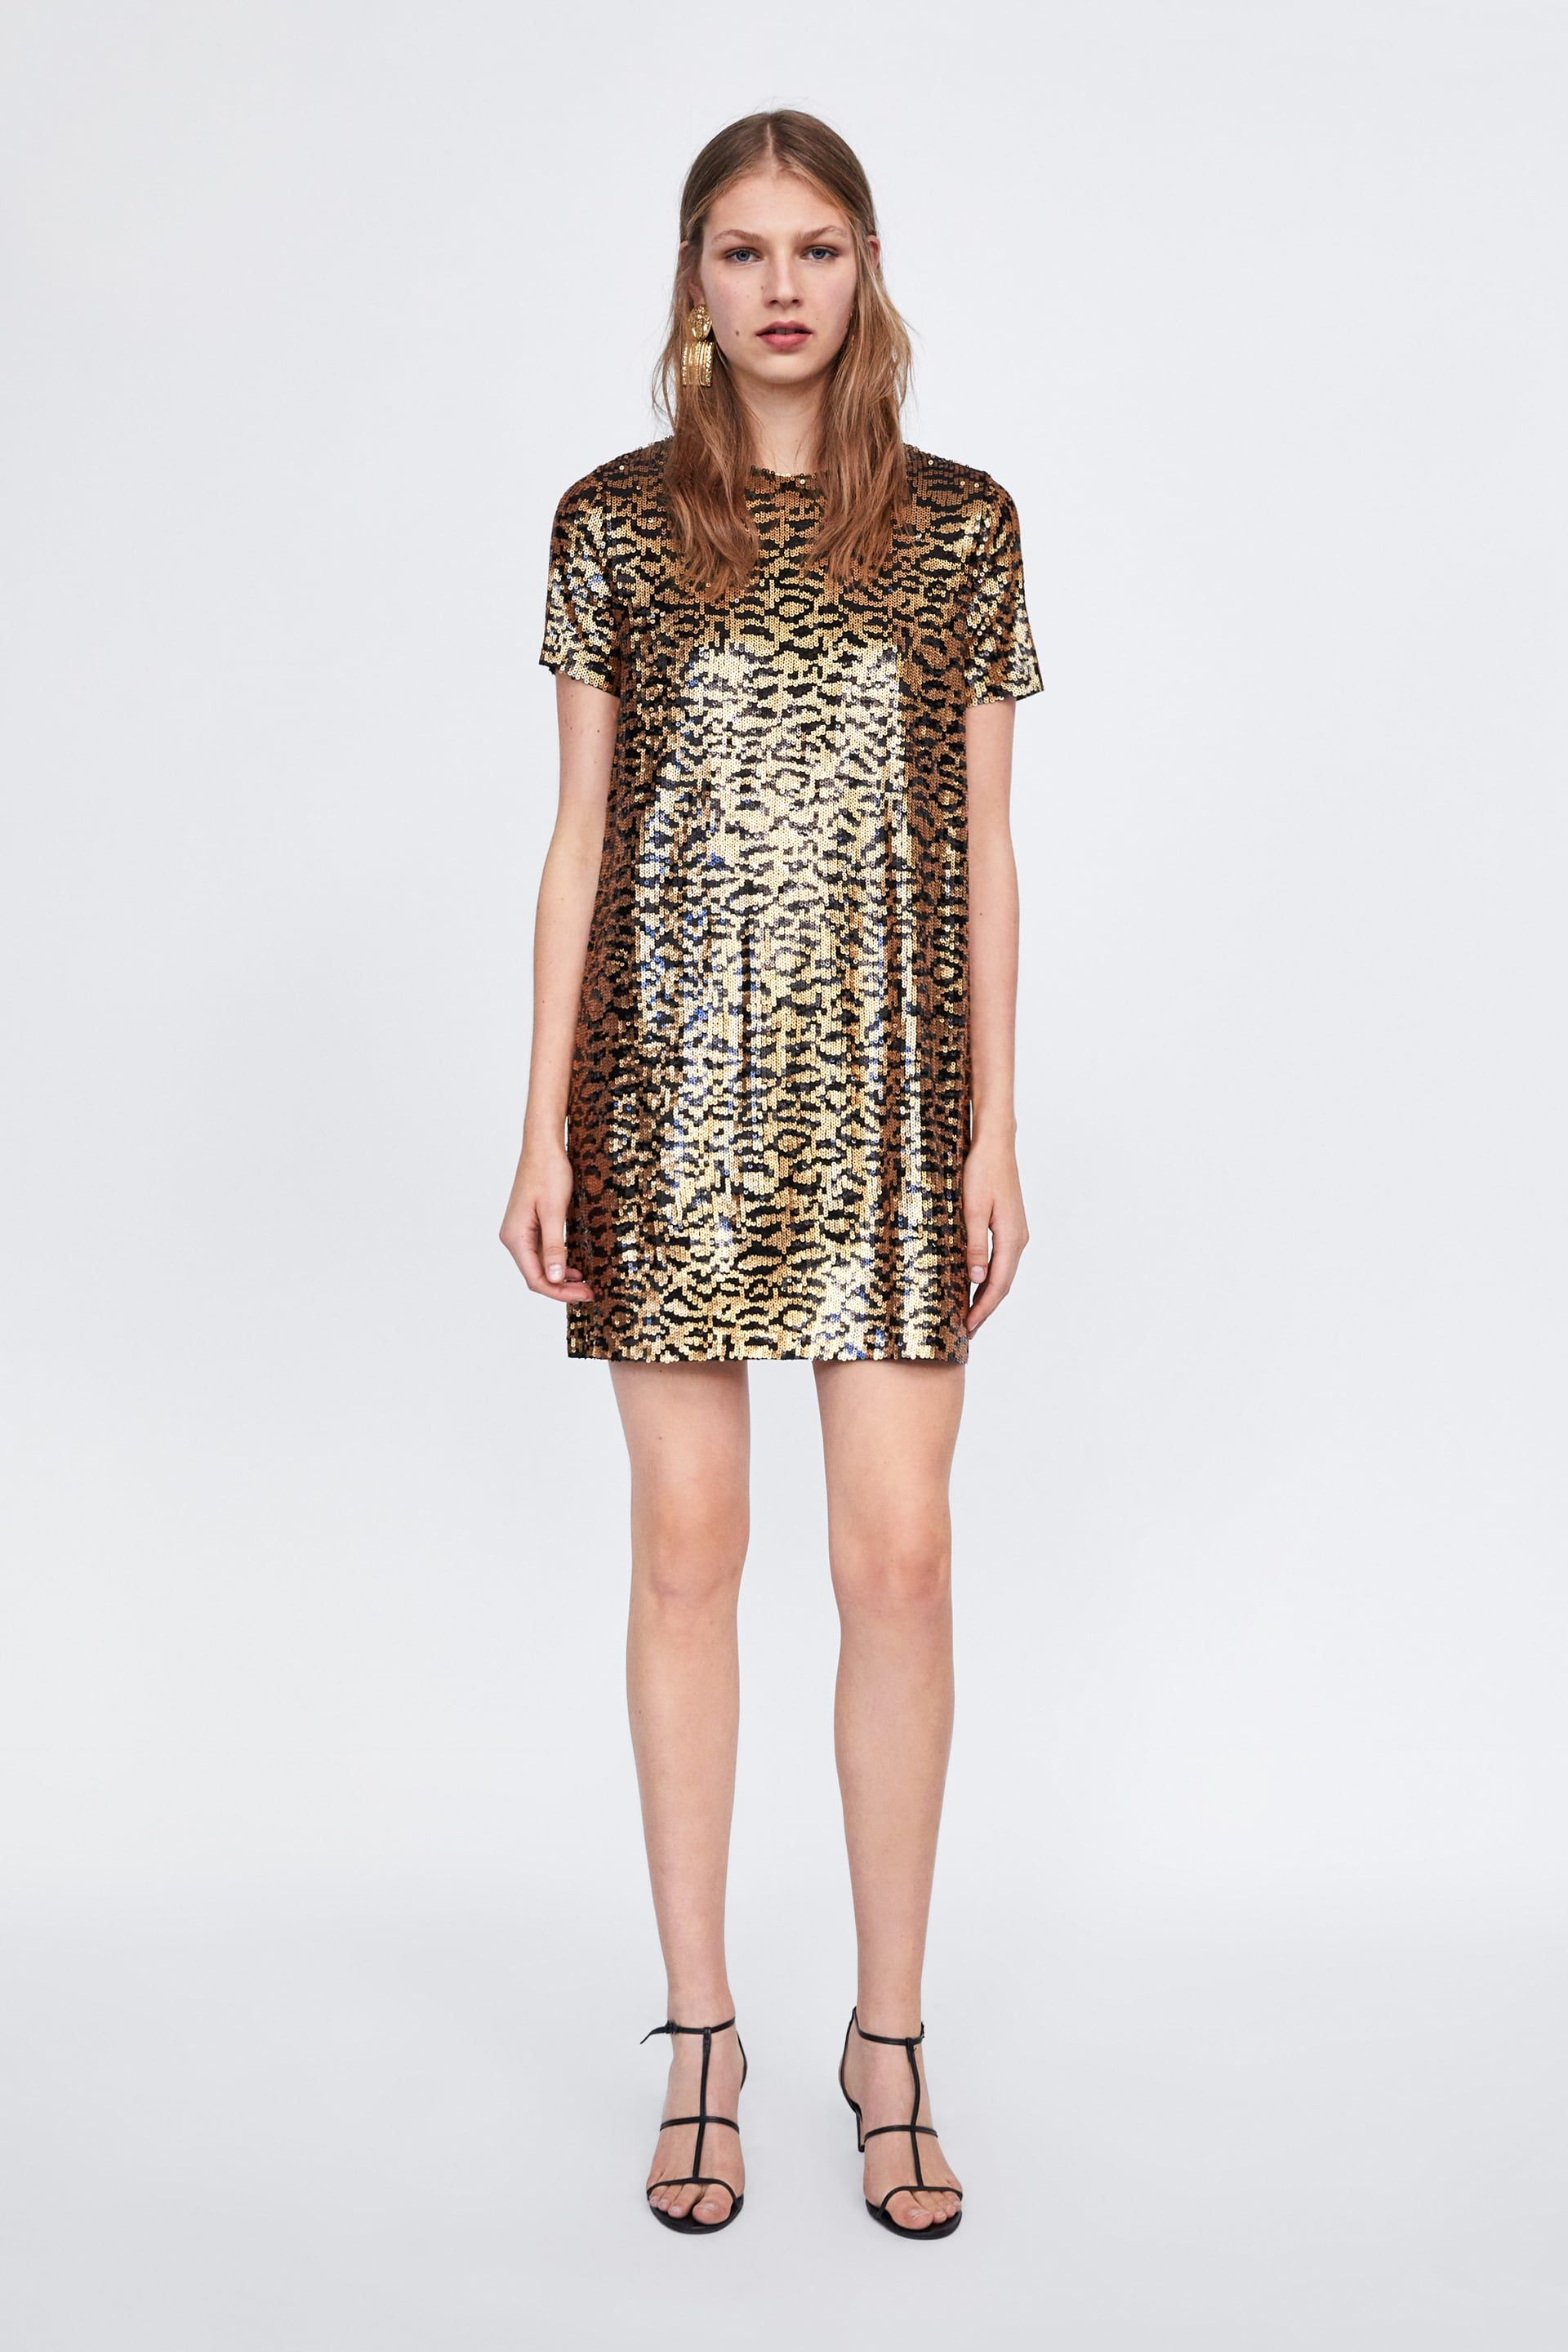 042ef35216 Image 1 of ANIMAL PRINT SEQUIN DRESS from Zara | Mix and Jingle ...